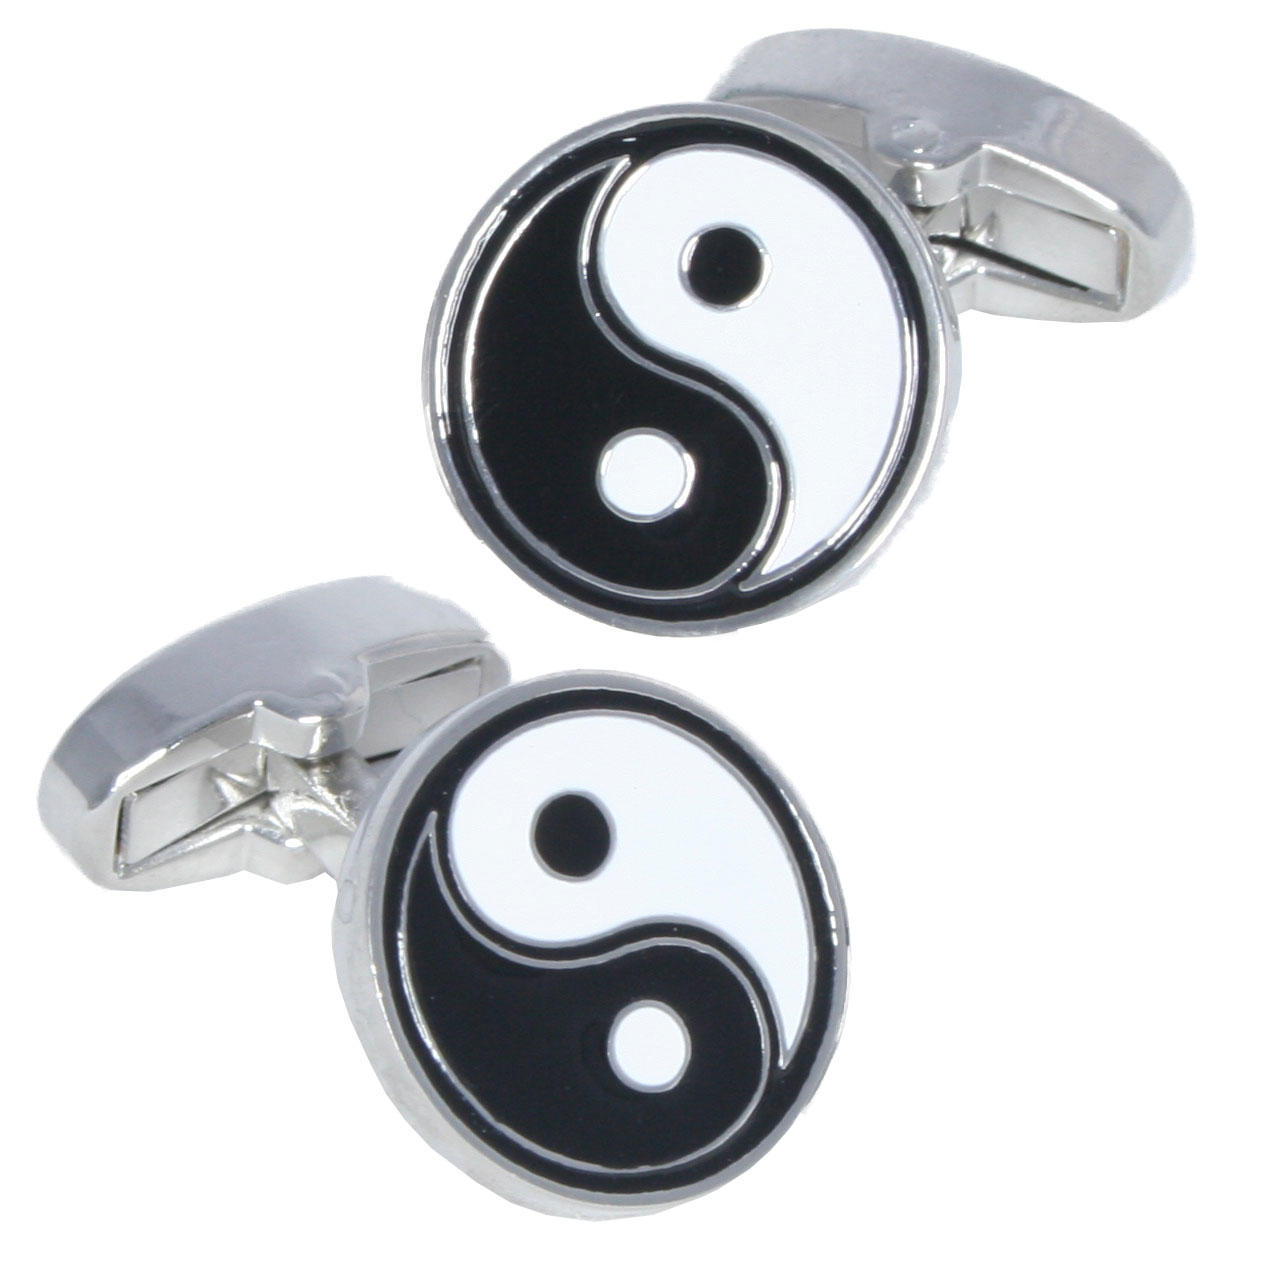 Yin-Yang Cufflinks from Cuffs & Co